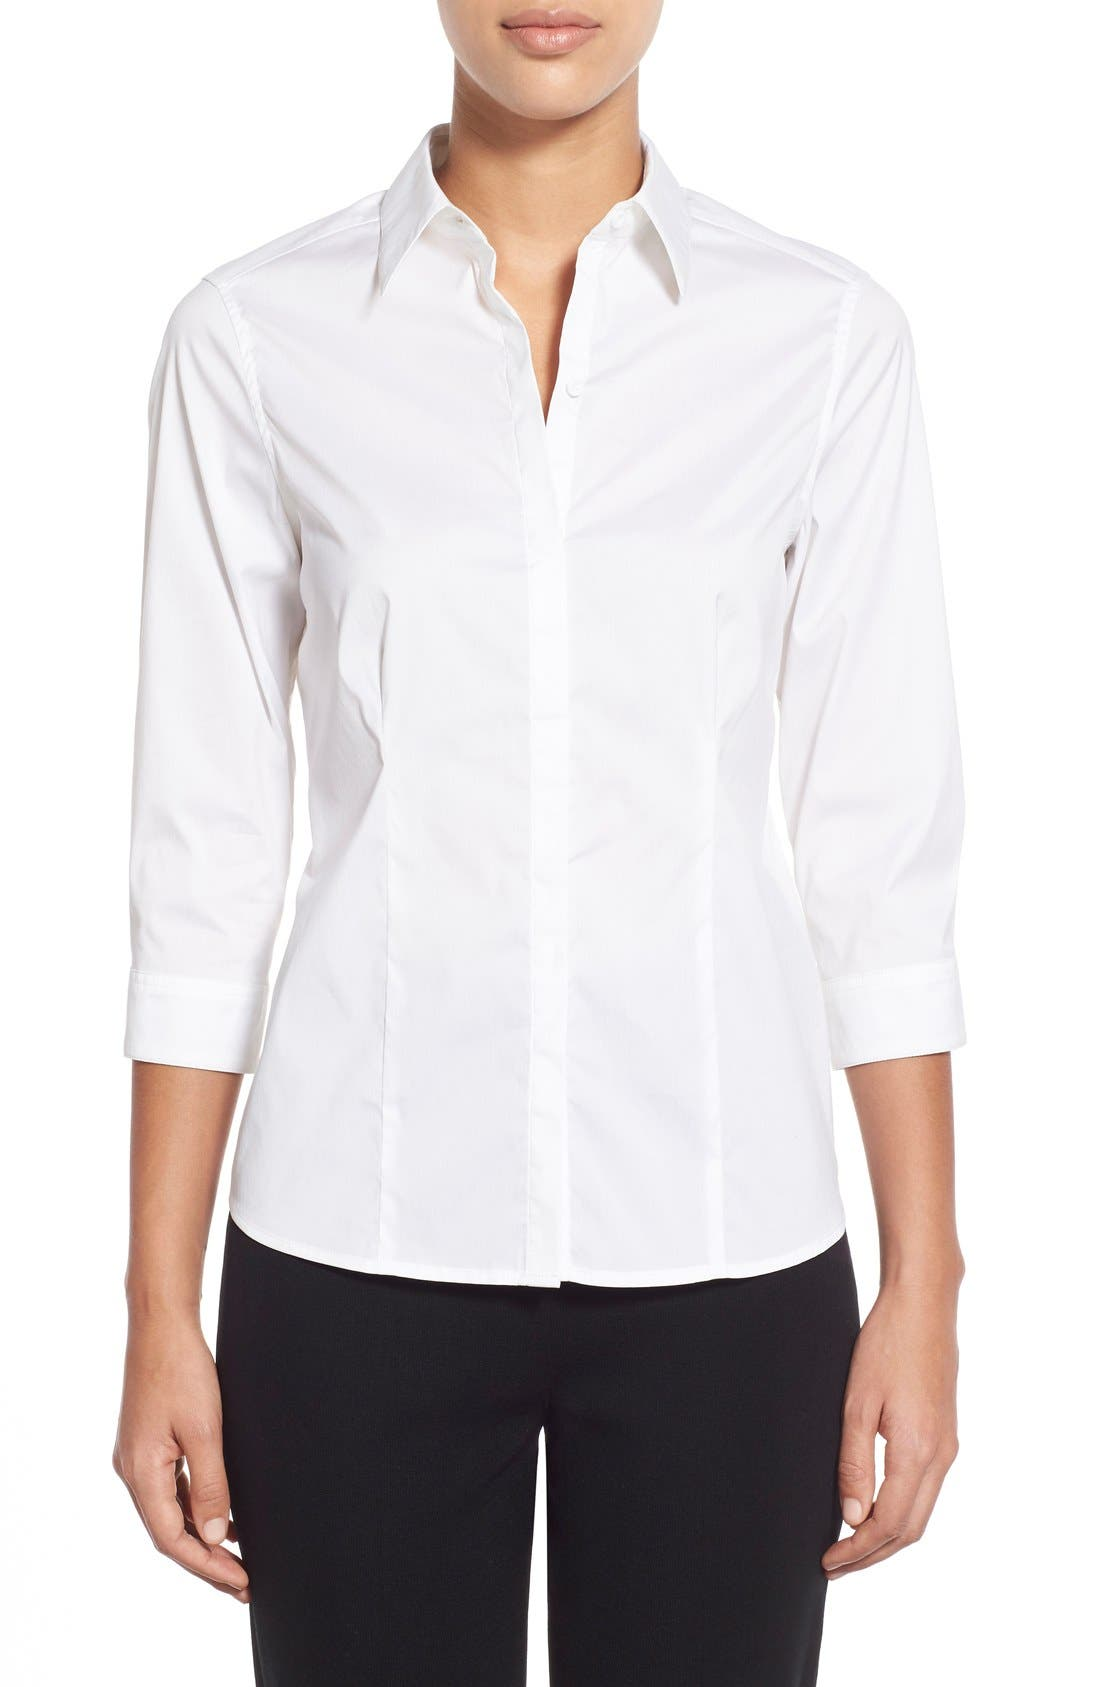 Main Image - Ming Wang Stretch Poplin Shirt